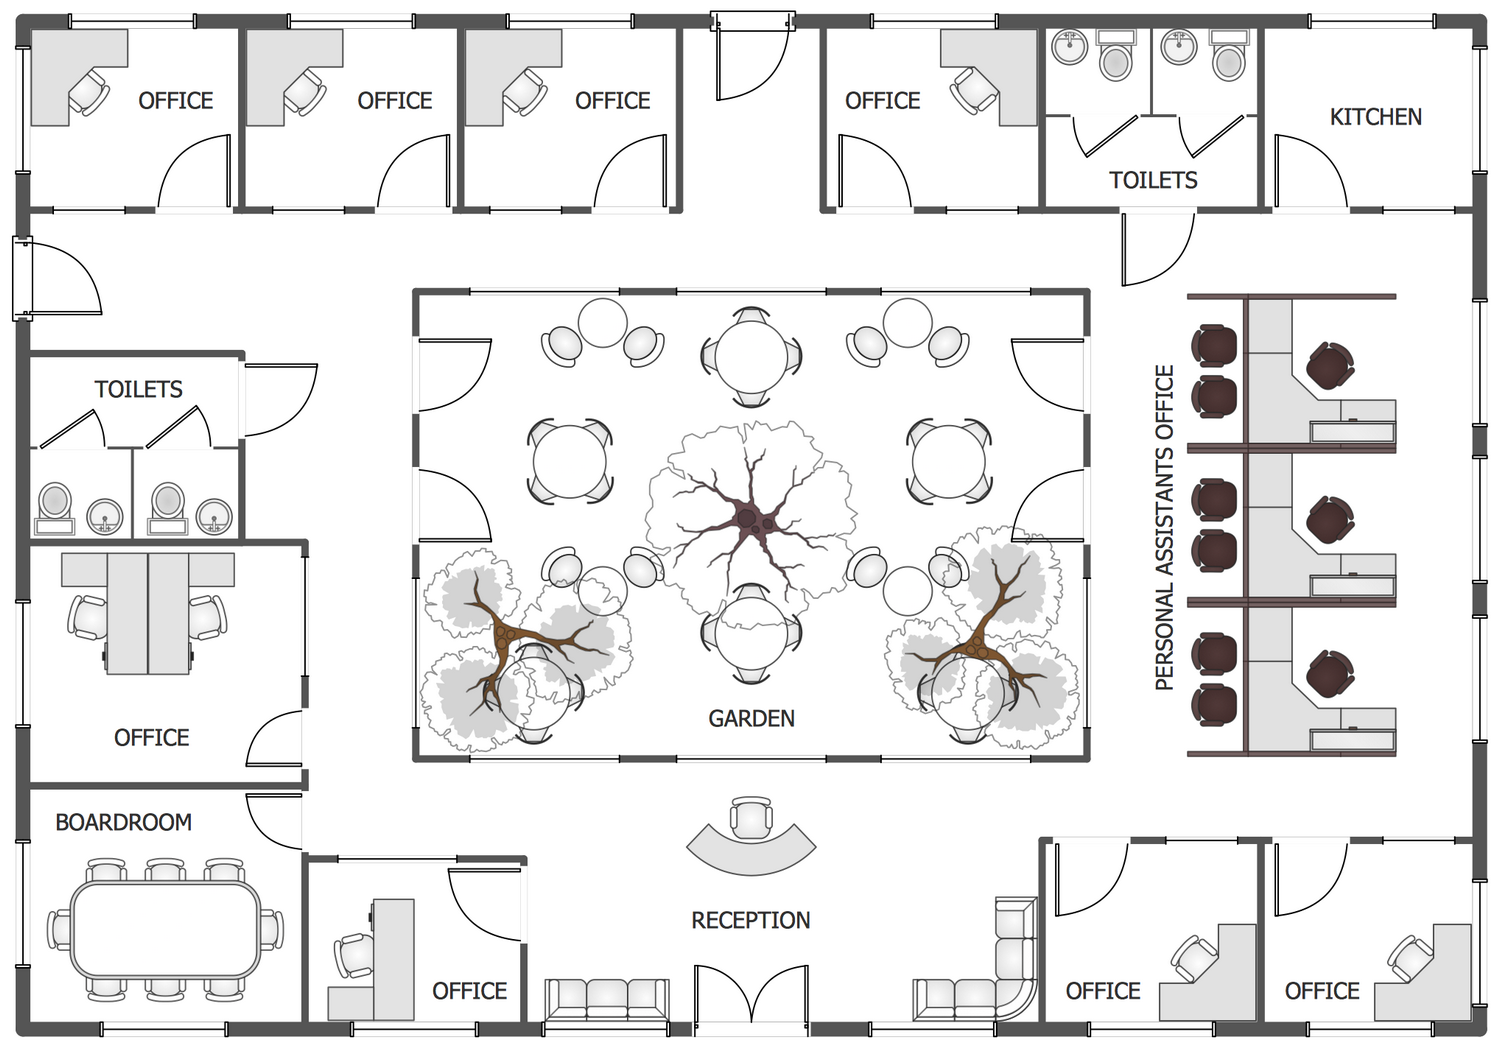 Office Floor Plan Ex les on doctor floor plans samples